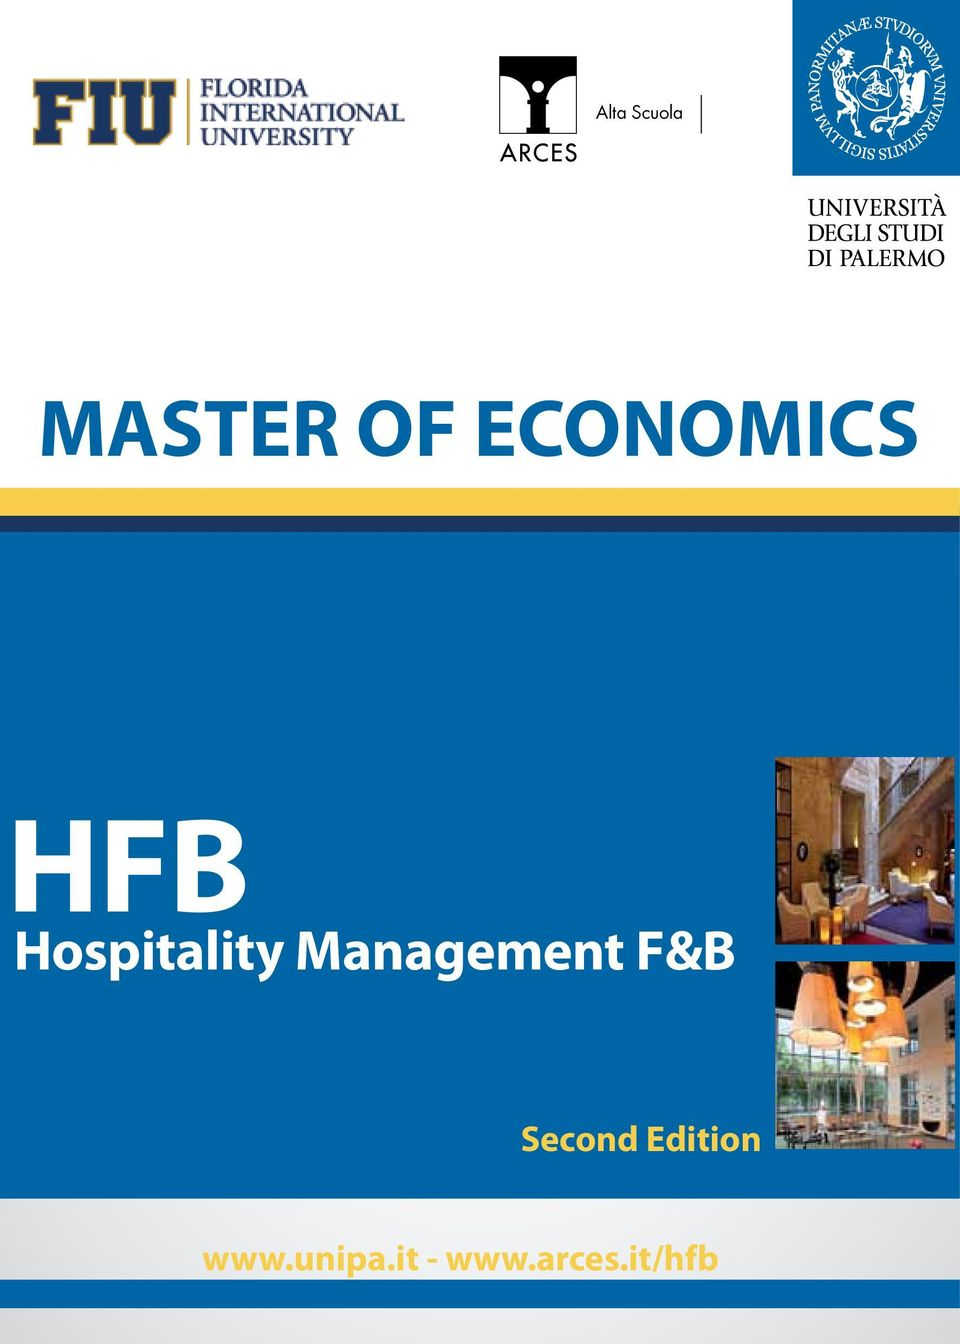 Management F&B Second